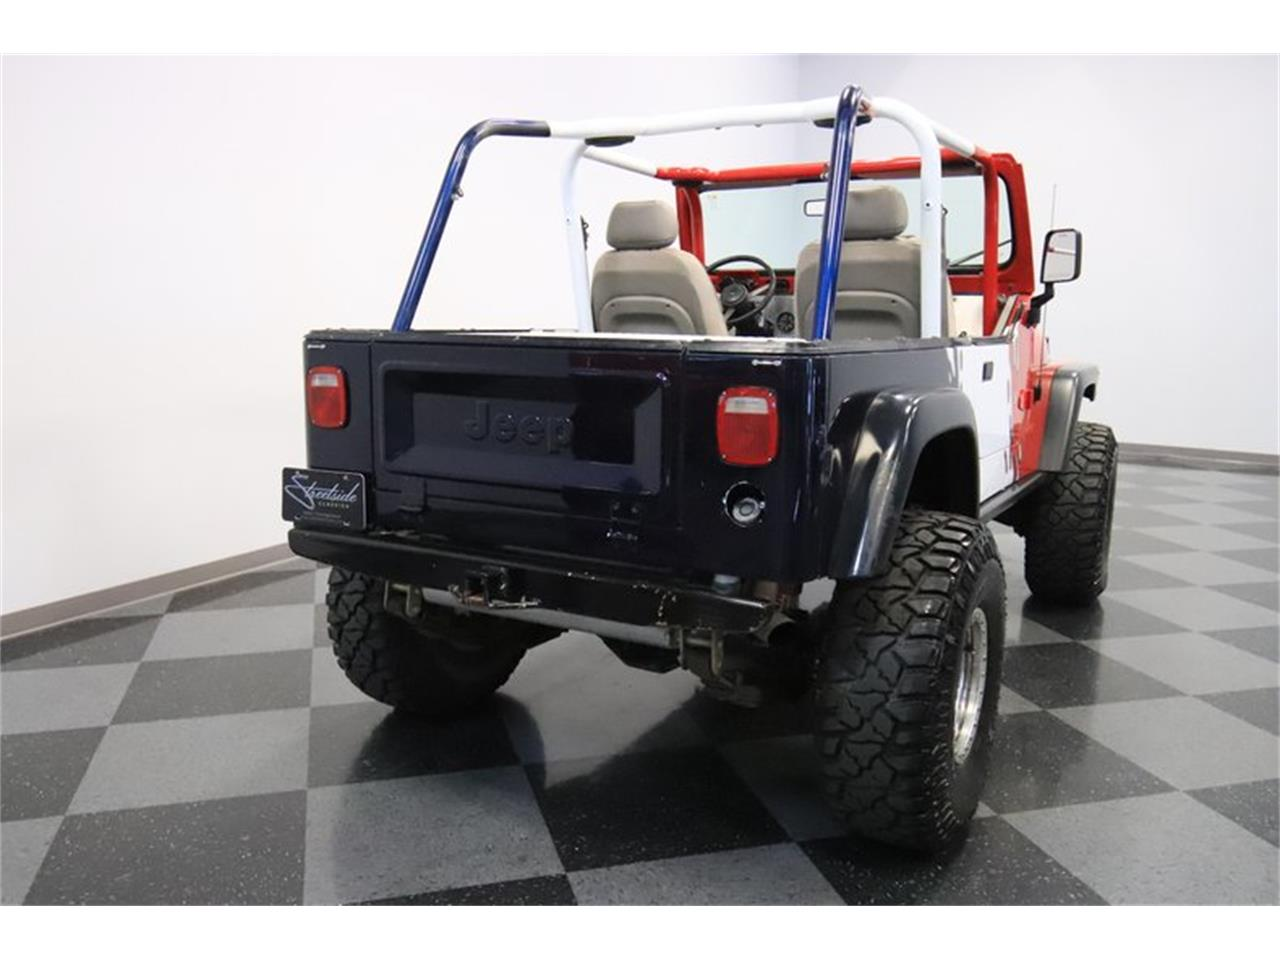 1983 Jeep CJ8 Scrambler for sale in Mesa, AZ – photo 11